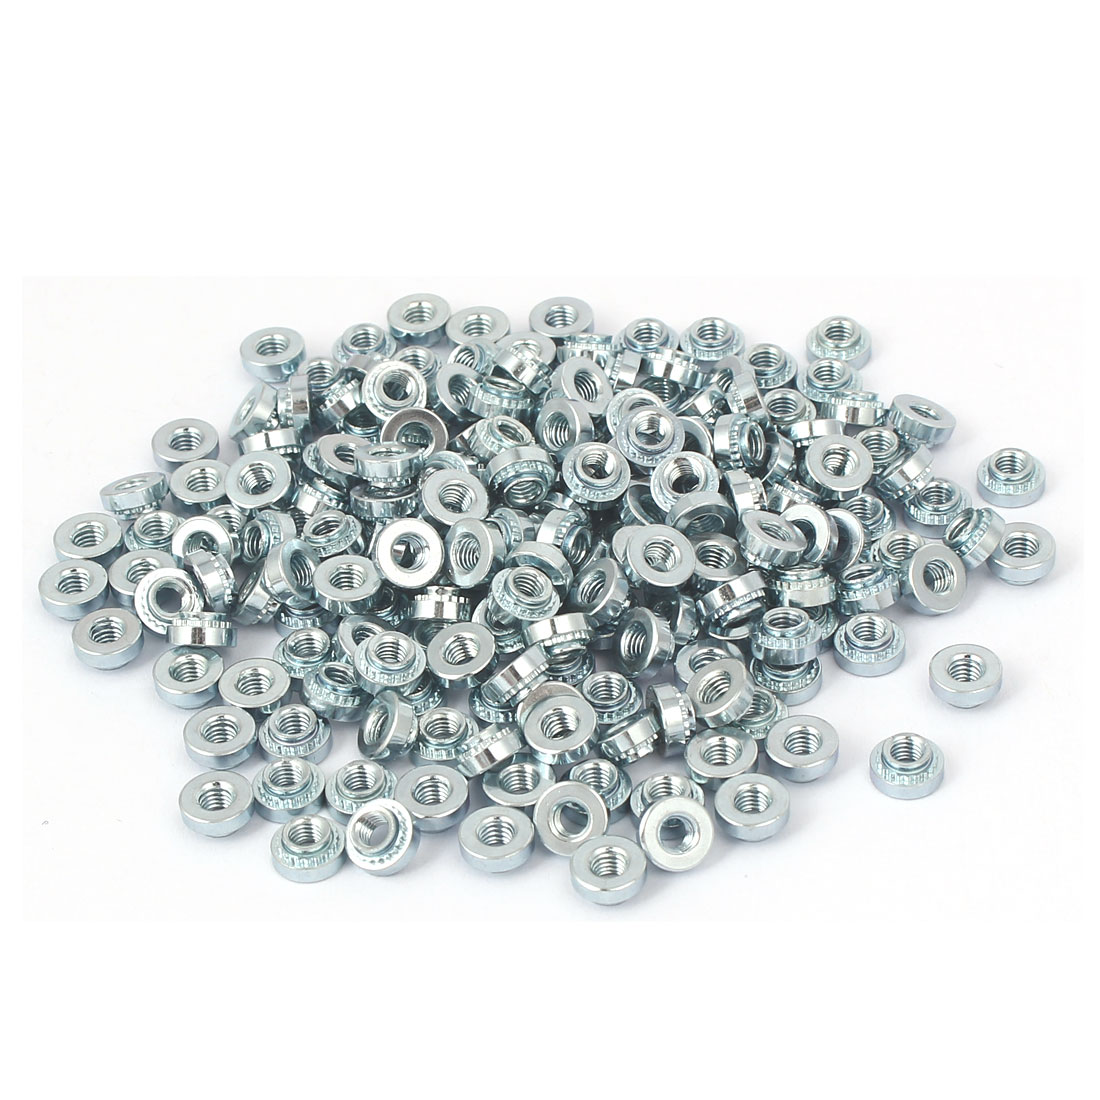 S-M3-2 Carbon Steel Self Clinching Rivet Nut Fastener 200pcs for 1.4mm Thin Plates